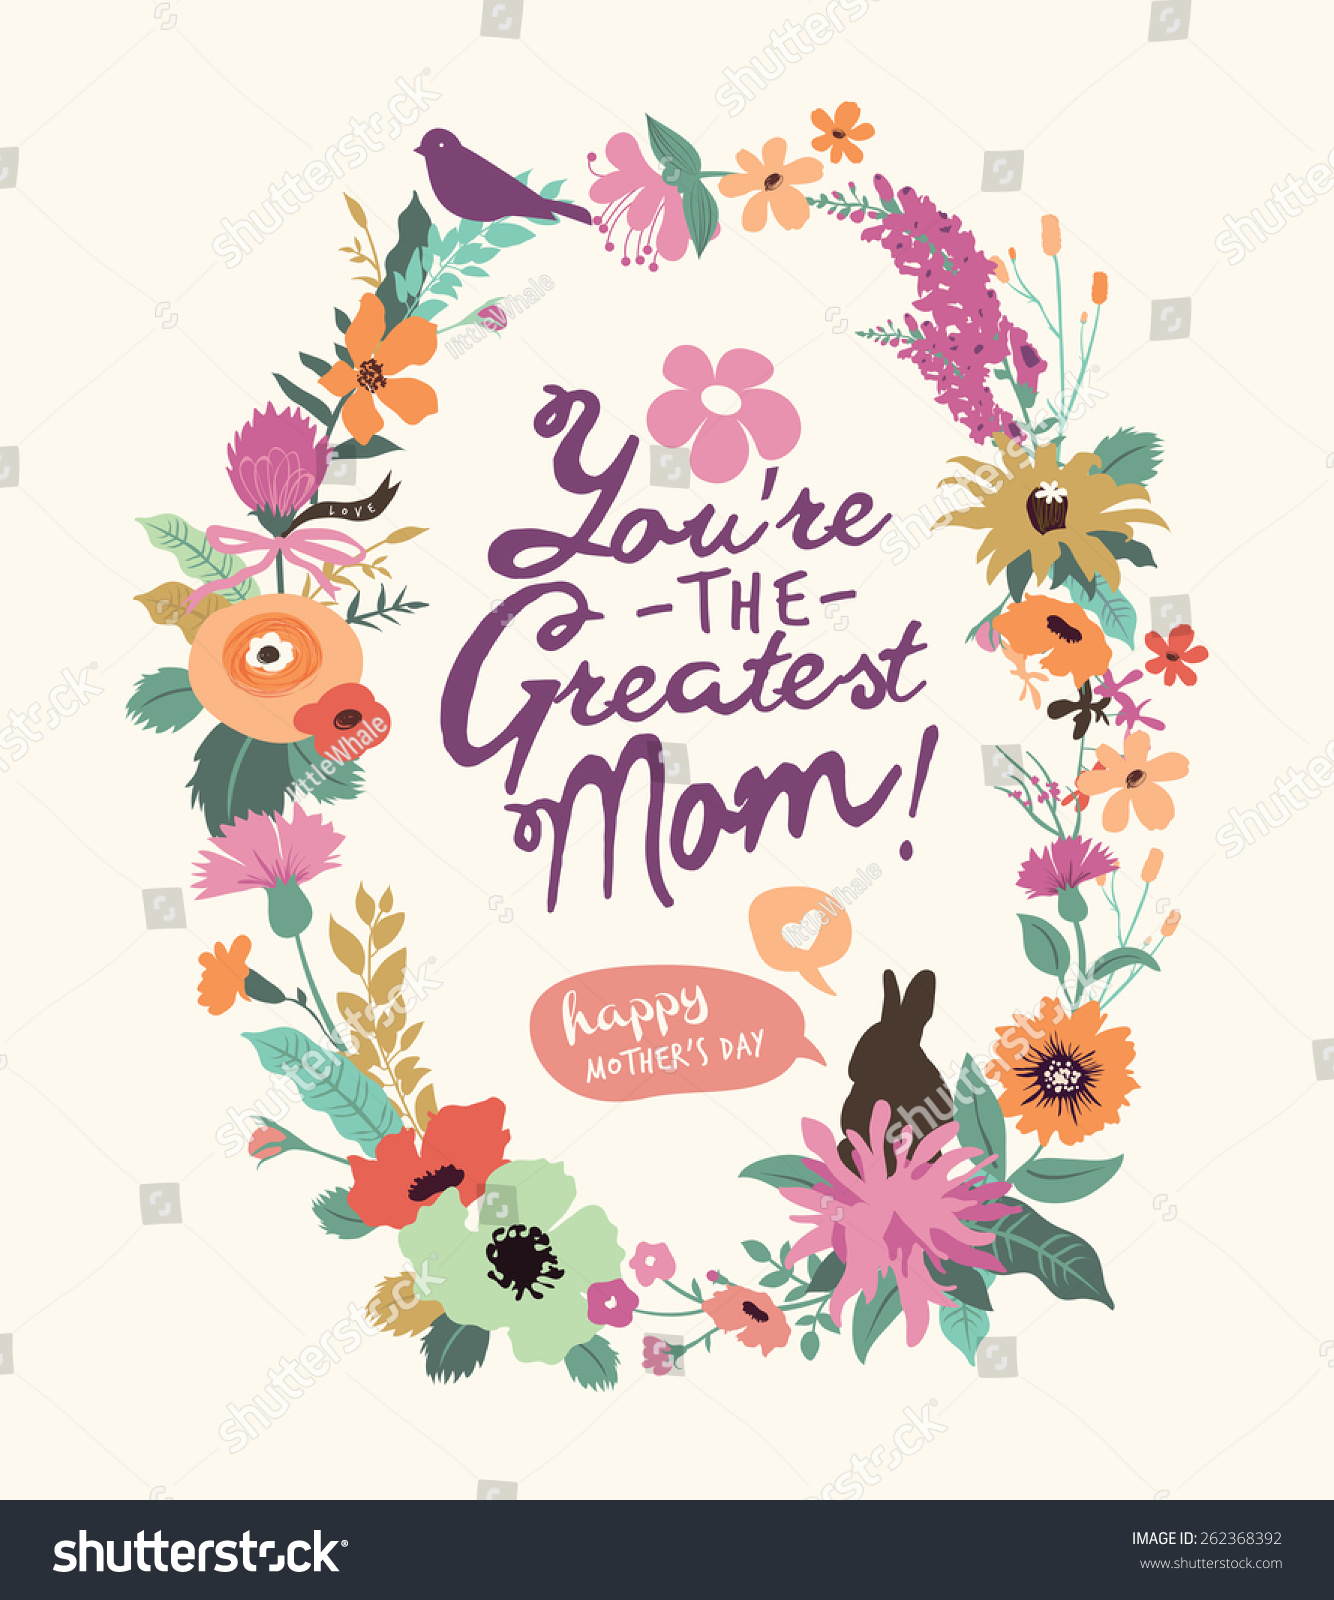 Vintage Style Mothers Day Greeting Card With Beautiful Floral